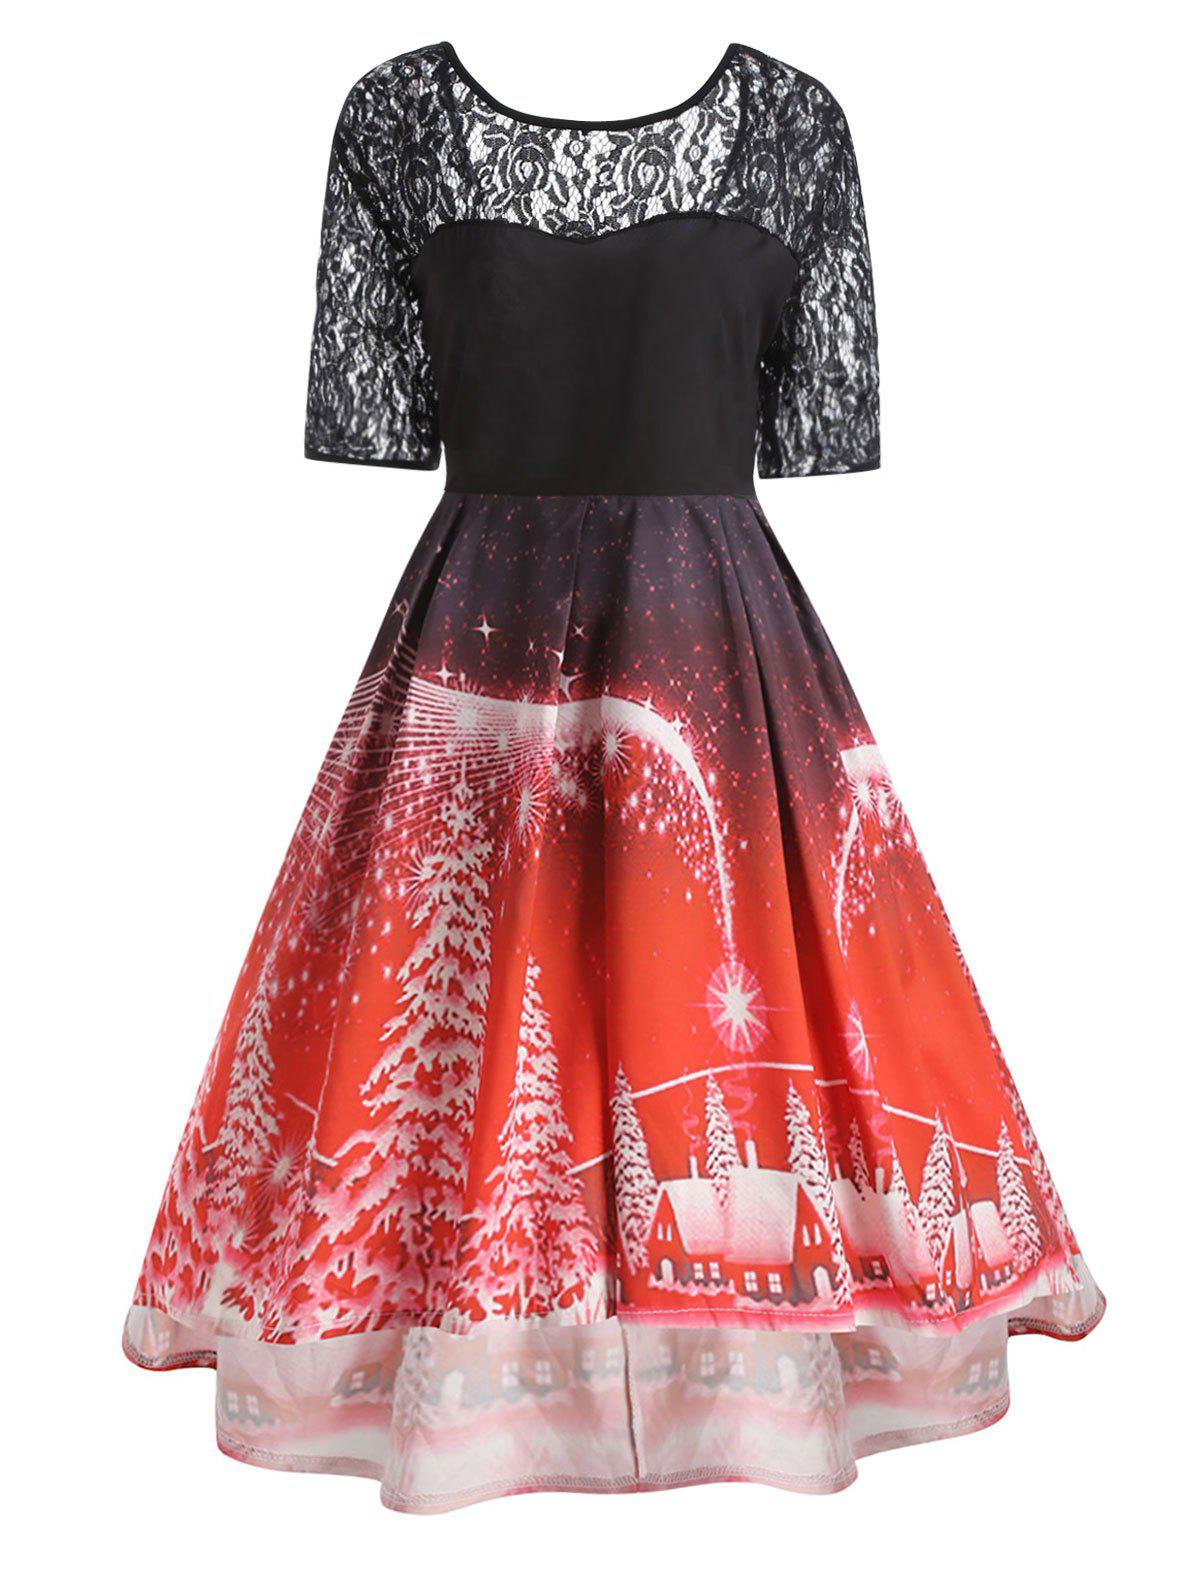 Plus Size  Lace Panel Vintage Christmas Party DressWOMEN<br><br>Size: 4XL; Color: RED; Style: Cute; Material: Polyester; Silhouette: Ball Gown; Dresses Length: Knee-Length; Neckline: Round Collar; Sleeve Length: Short Sleeves; Embellishment: Hollow Out,Lace,Vintage; Pattern Type: Print; With Belt: No; Season: Fall,Winter; Weight: 0.3200kg; Package Contents: 1 x Dress;